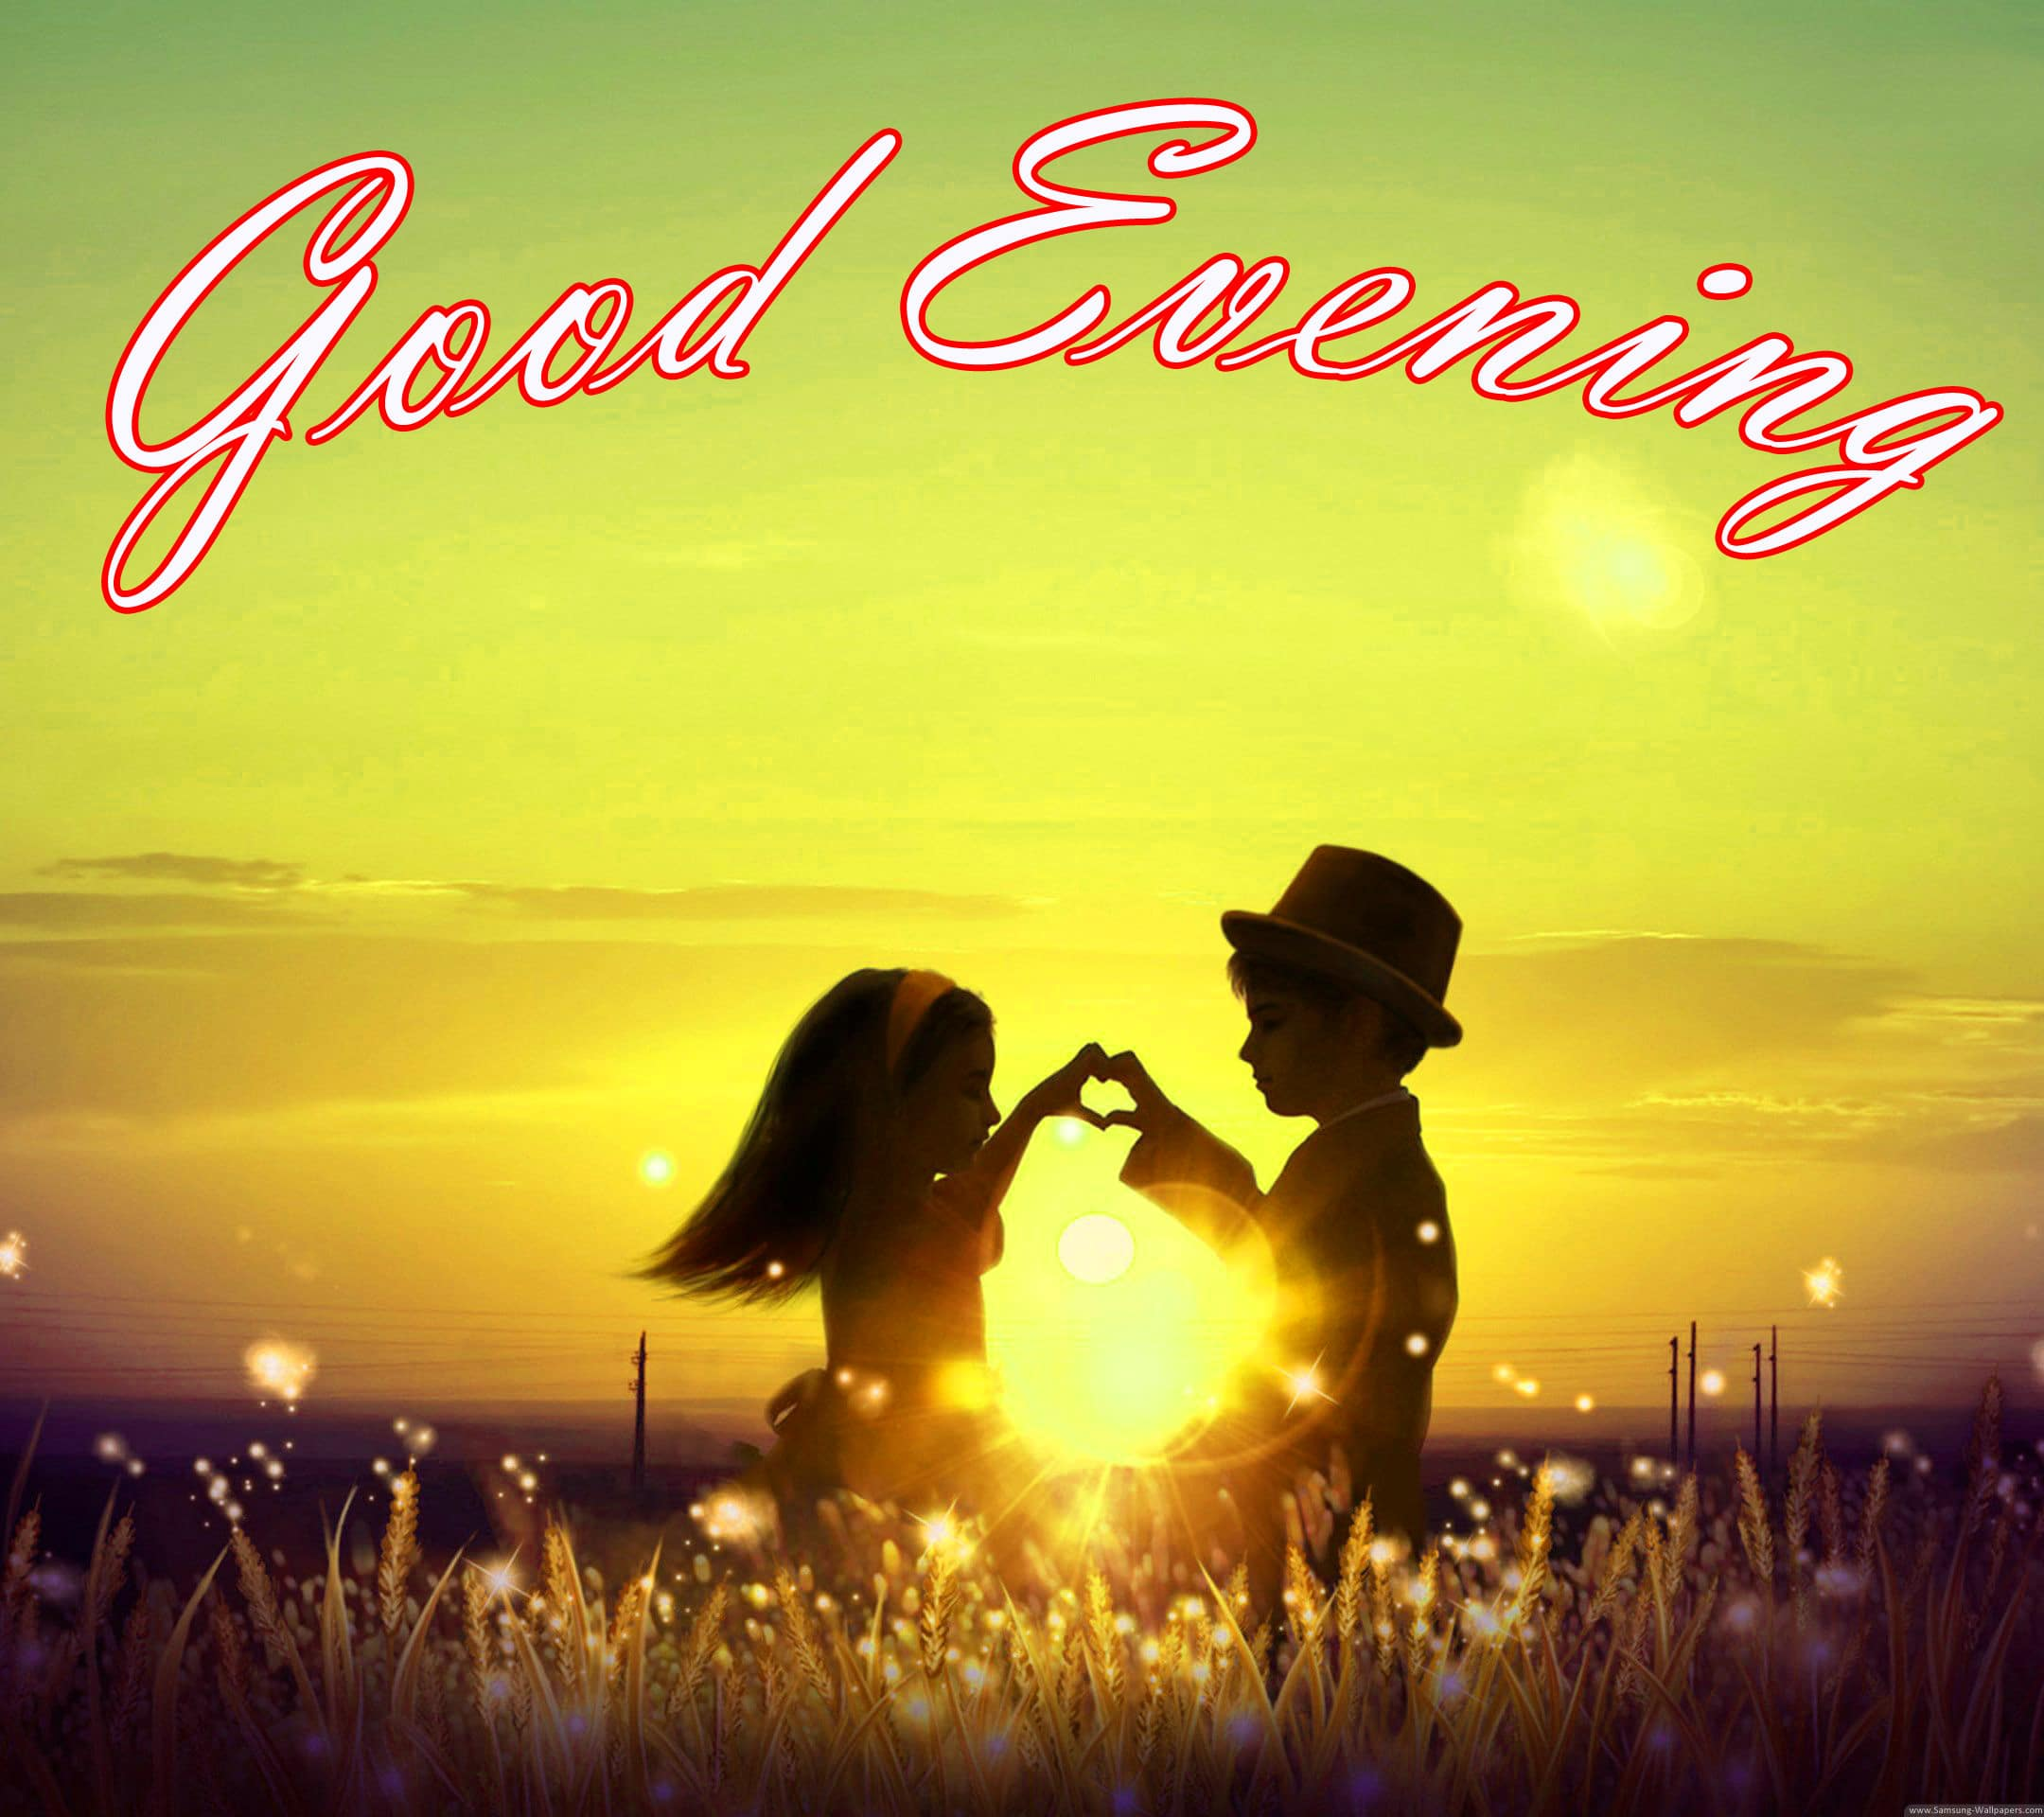 Good Evening Images For Love